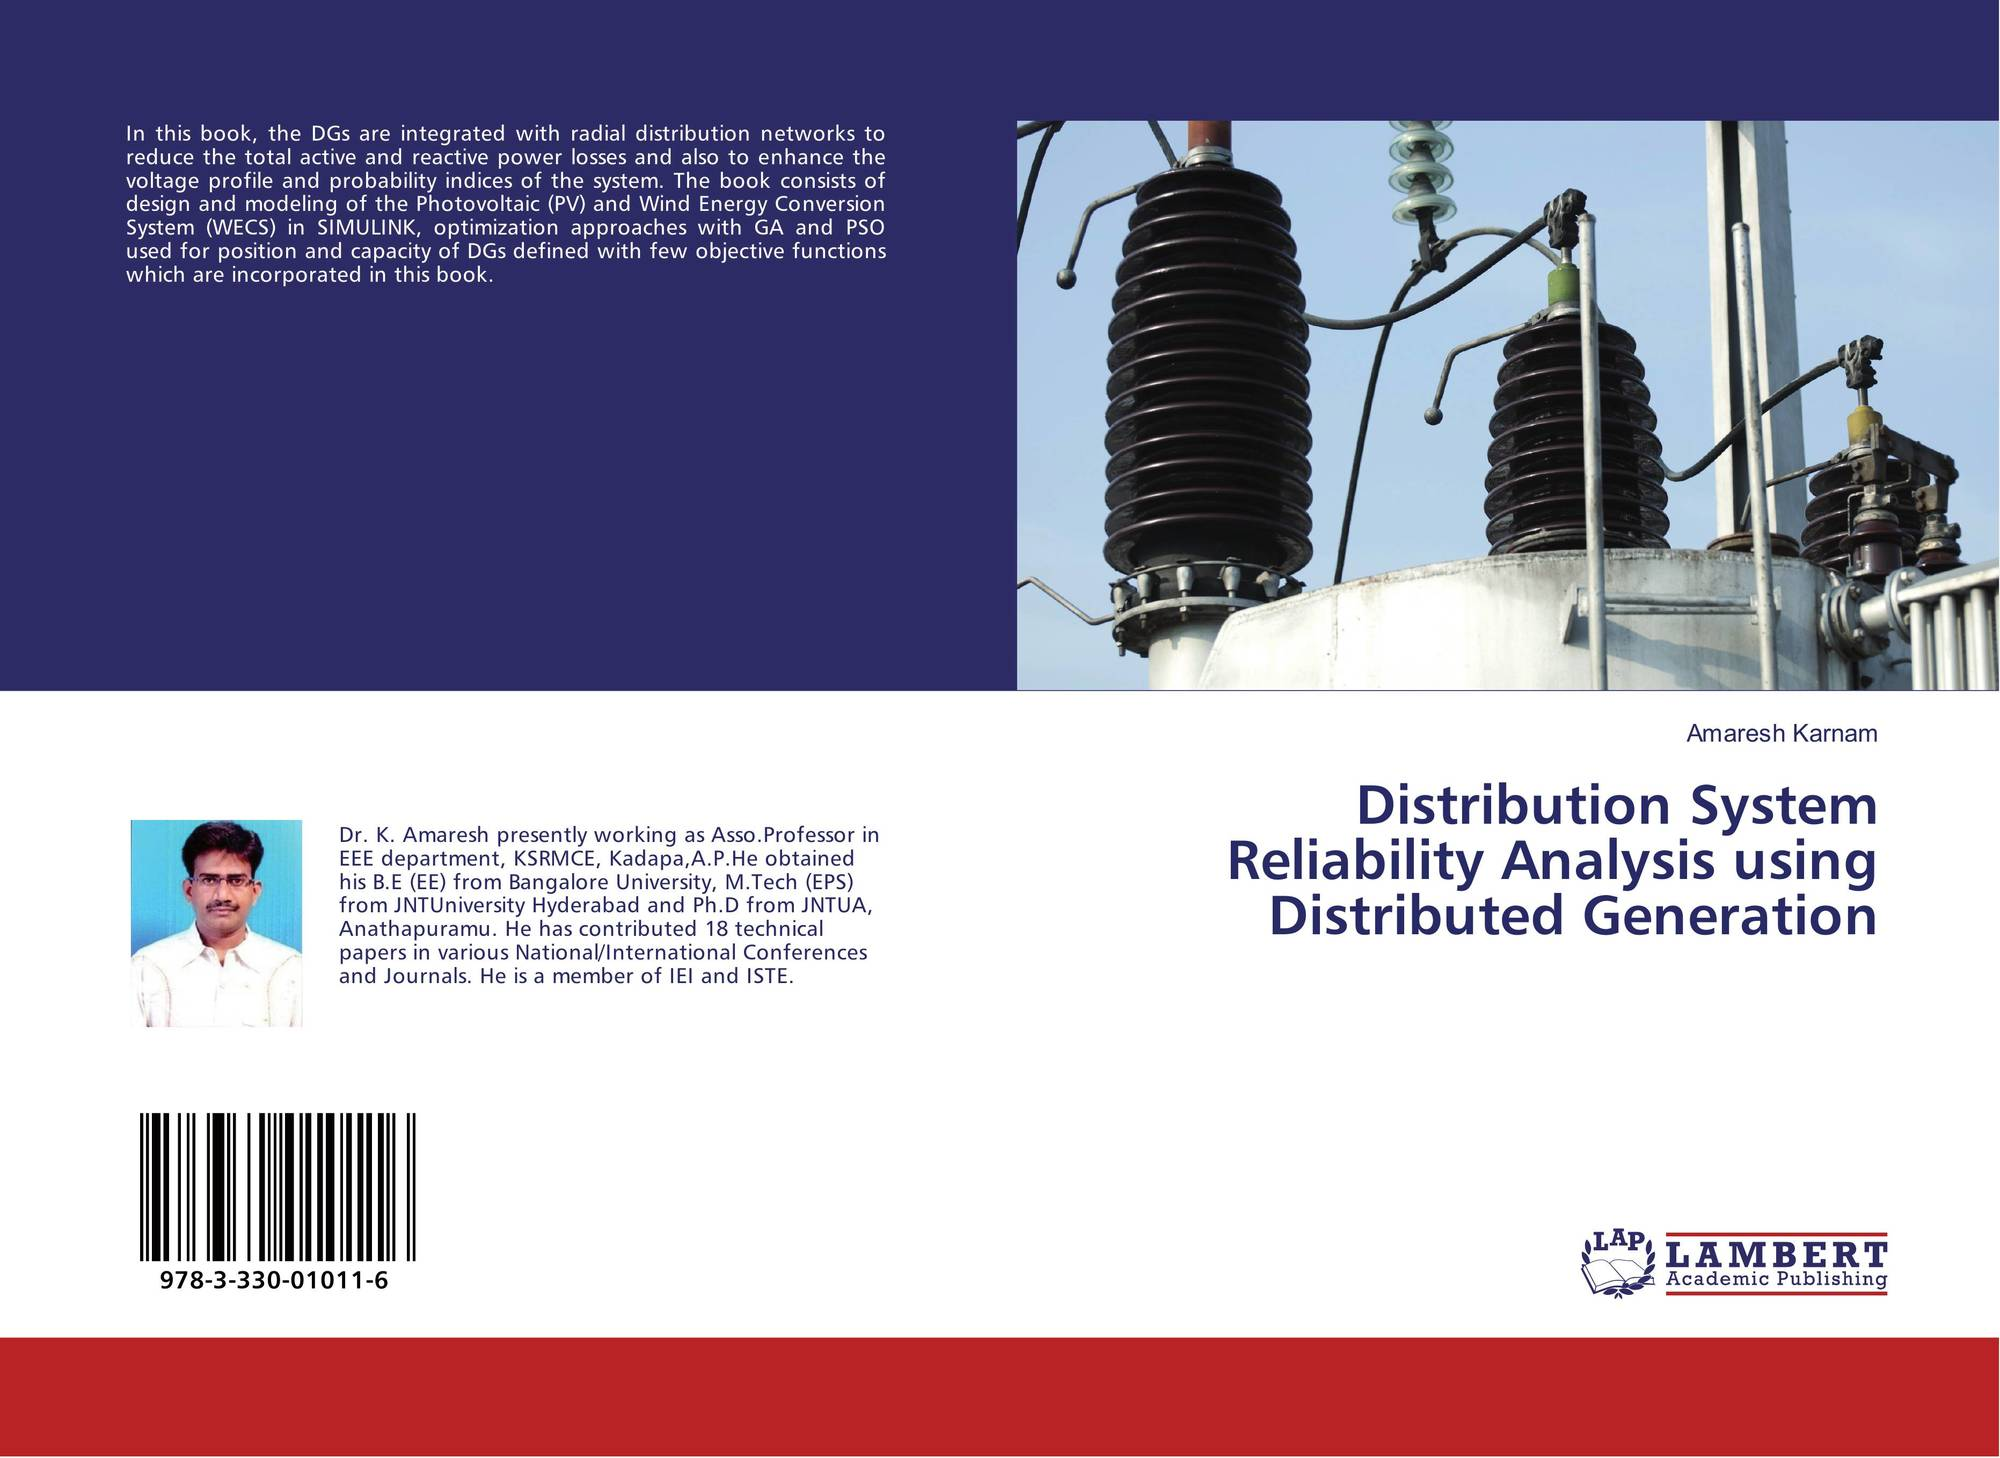 Distribution System Reliability Analysis using Distributed